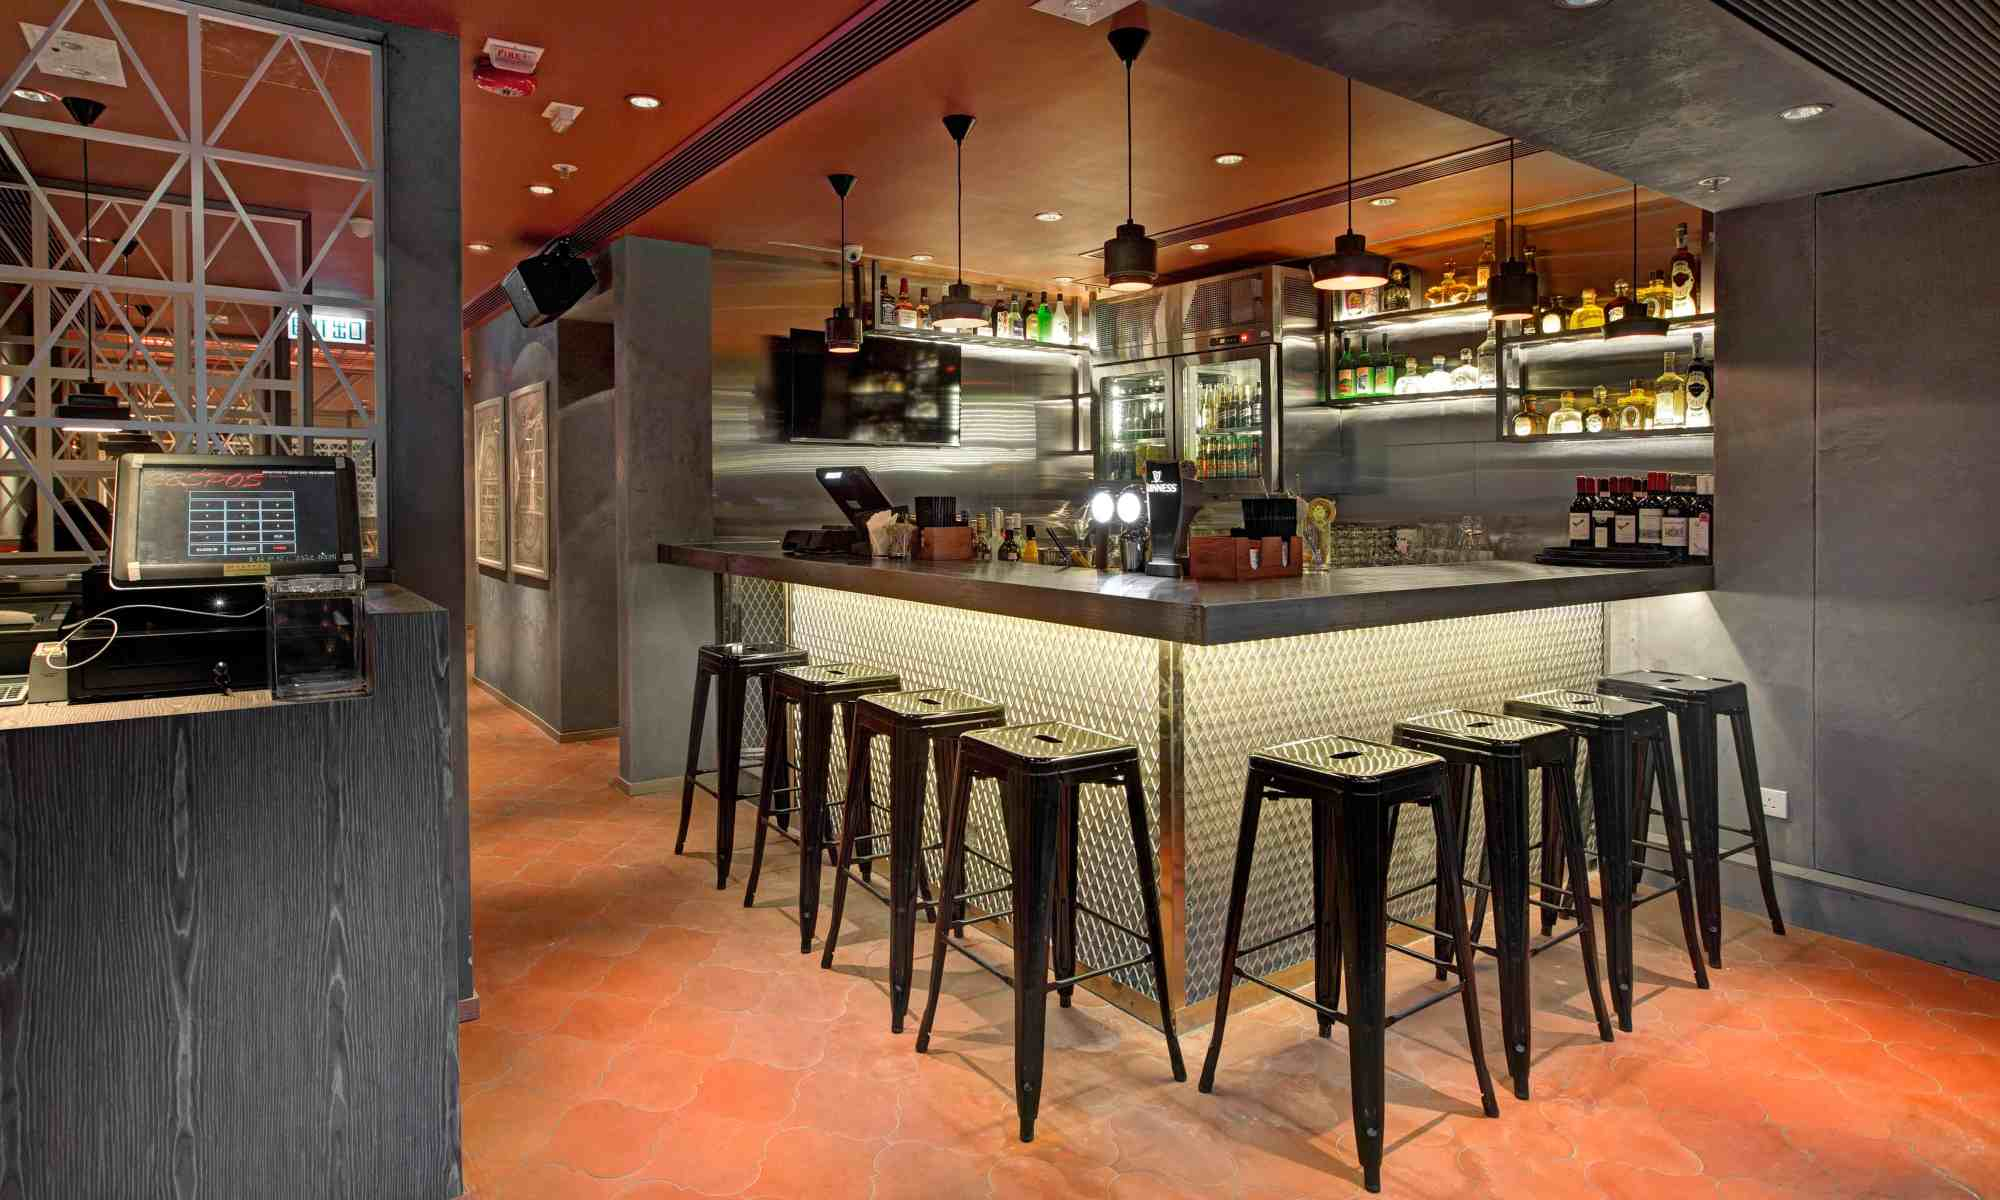 image-of-caliente-hong-kong-mexican-restaurant-bar